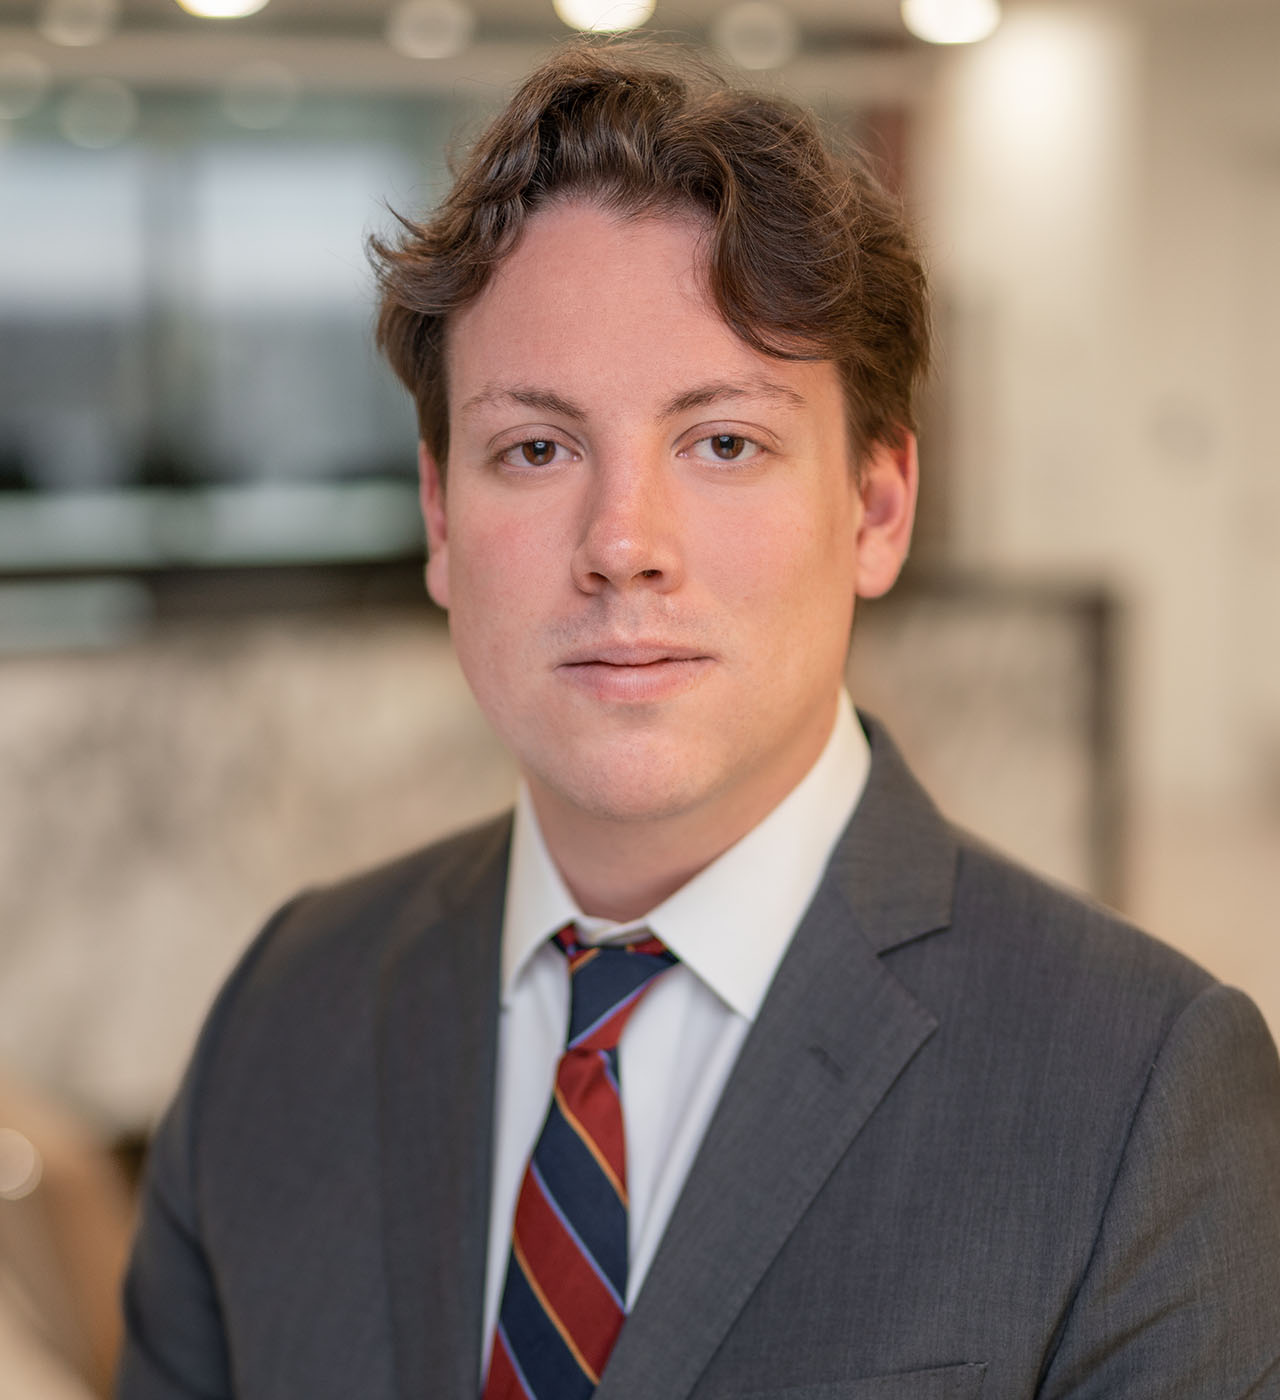 Evan G. Hutchison is an Associate at Kanuka Thuringer LLP